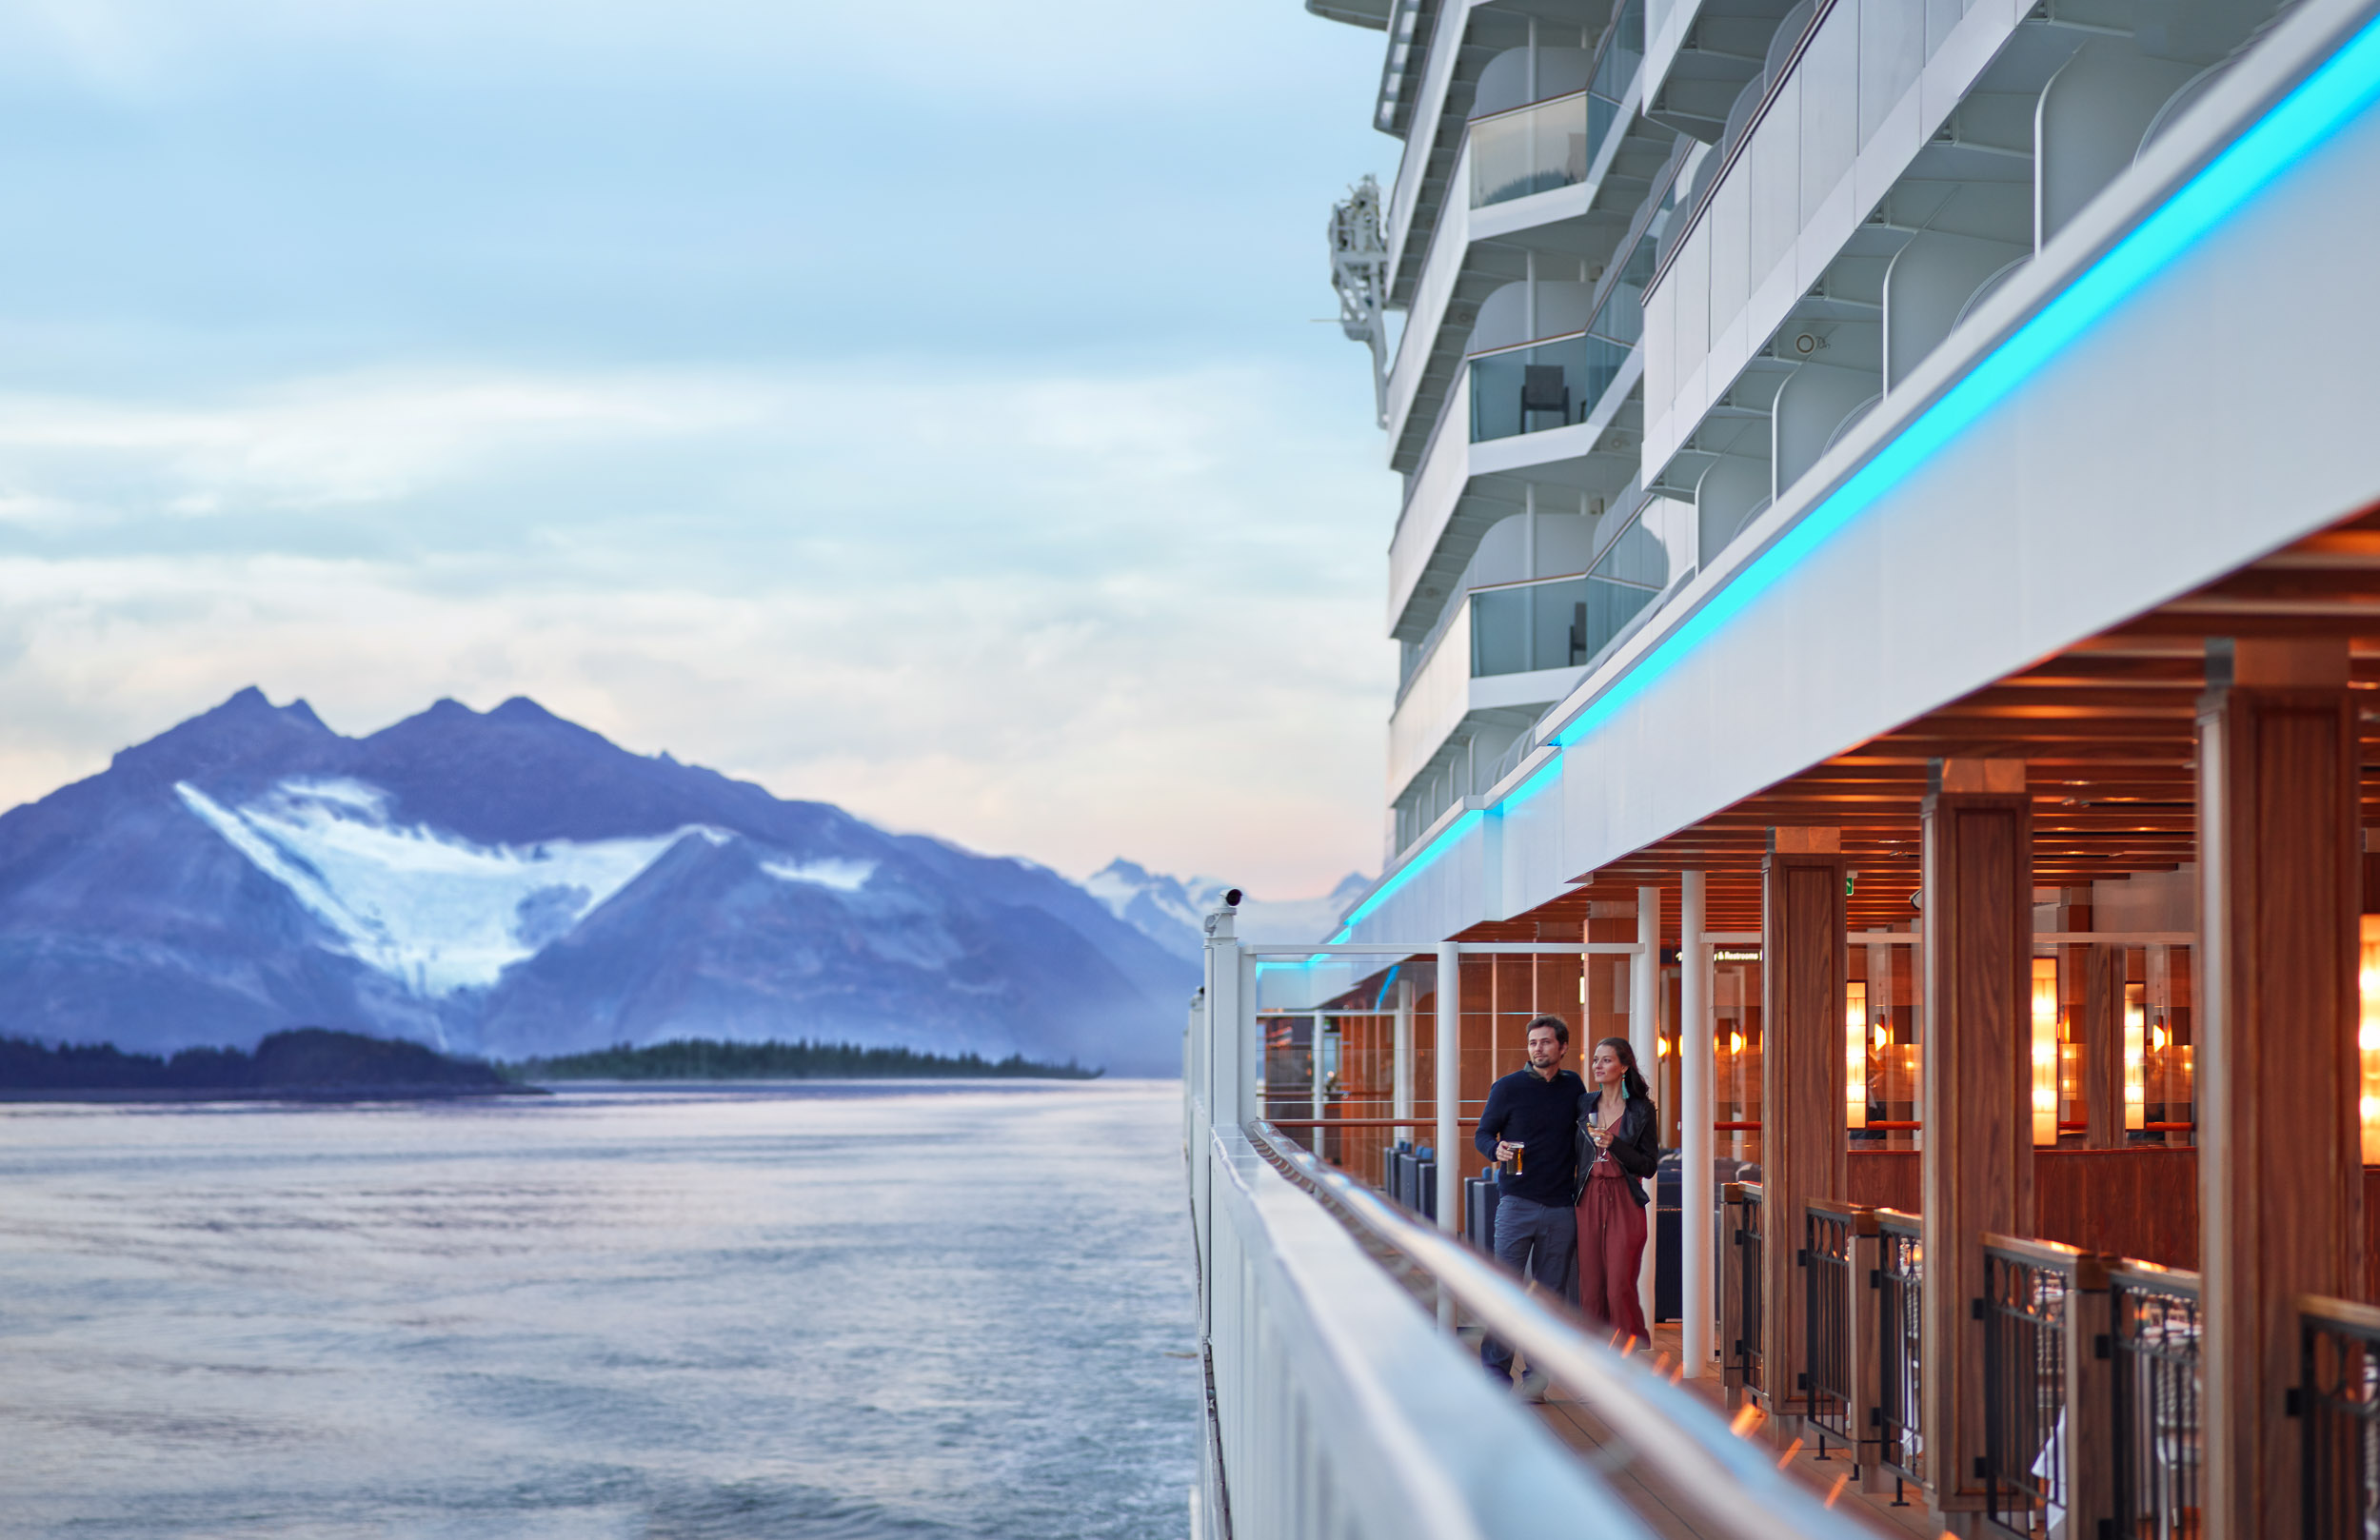 Kevin Steele - a couple on the deck of a cruise ship in Alaska